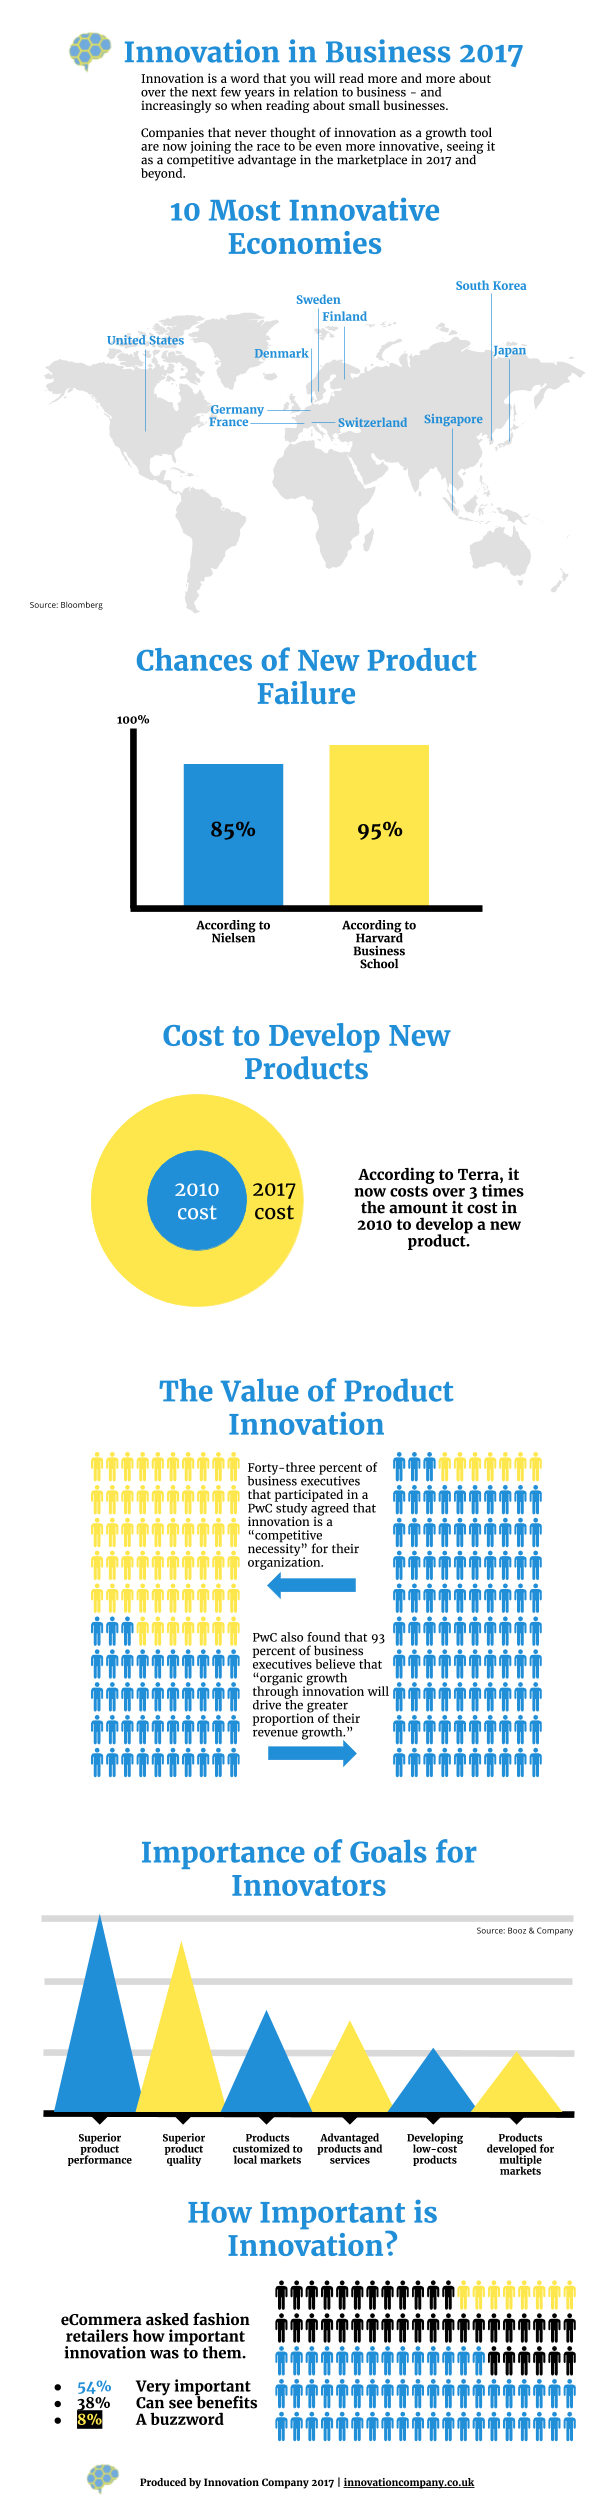 Innovation for business in 2017 #infographic